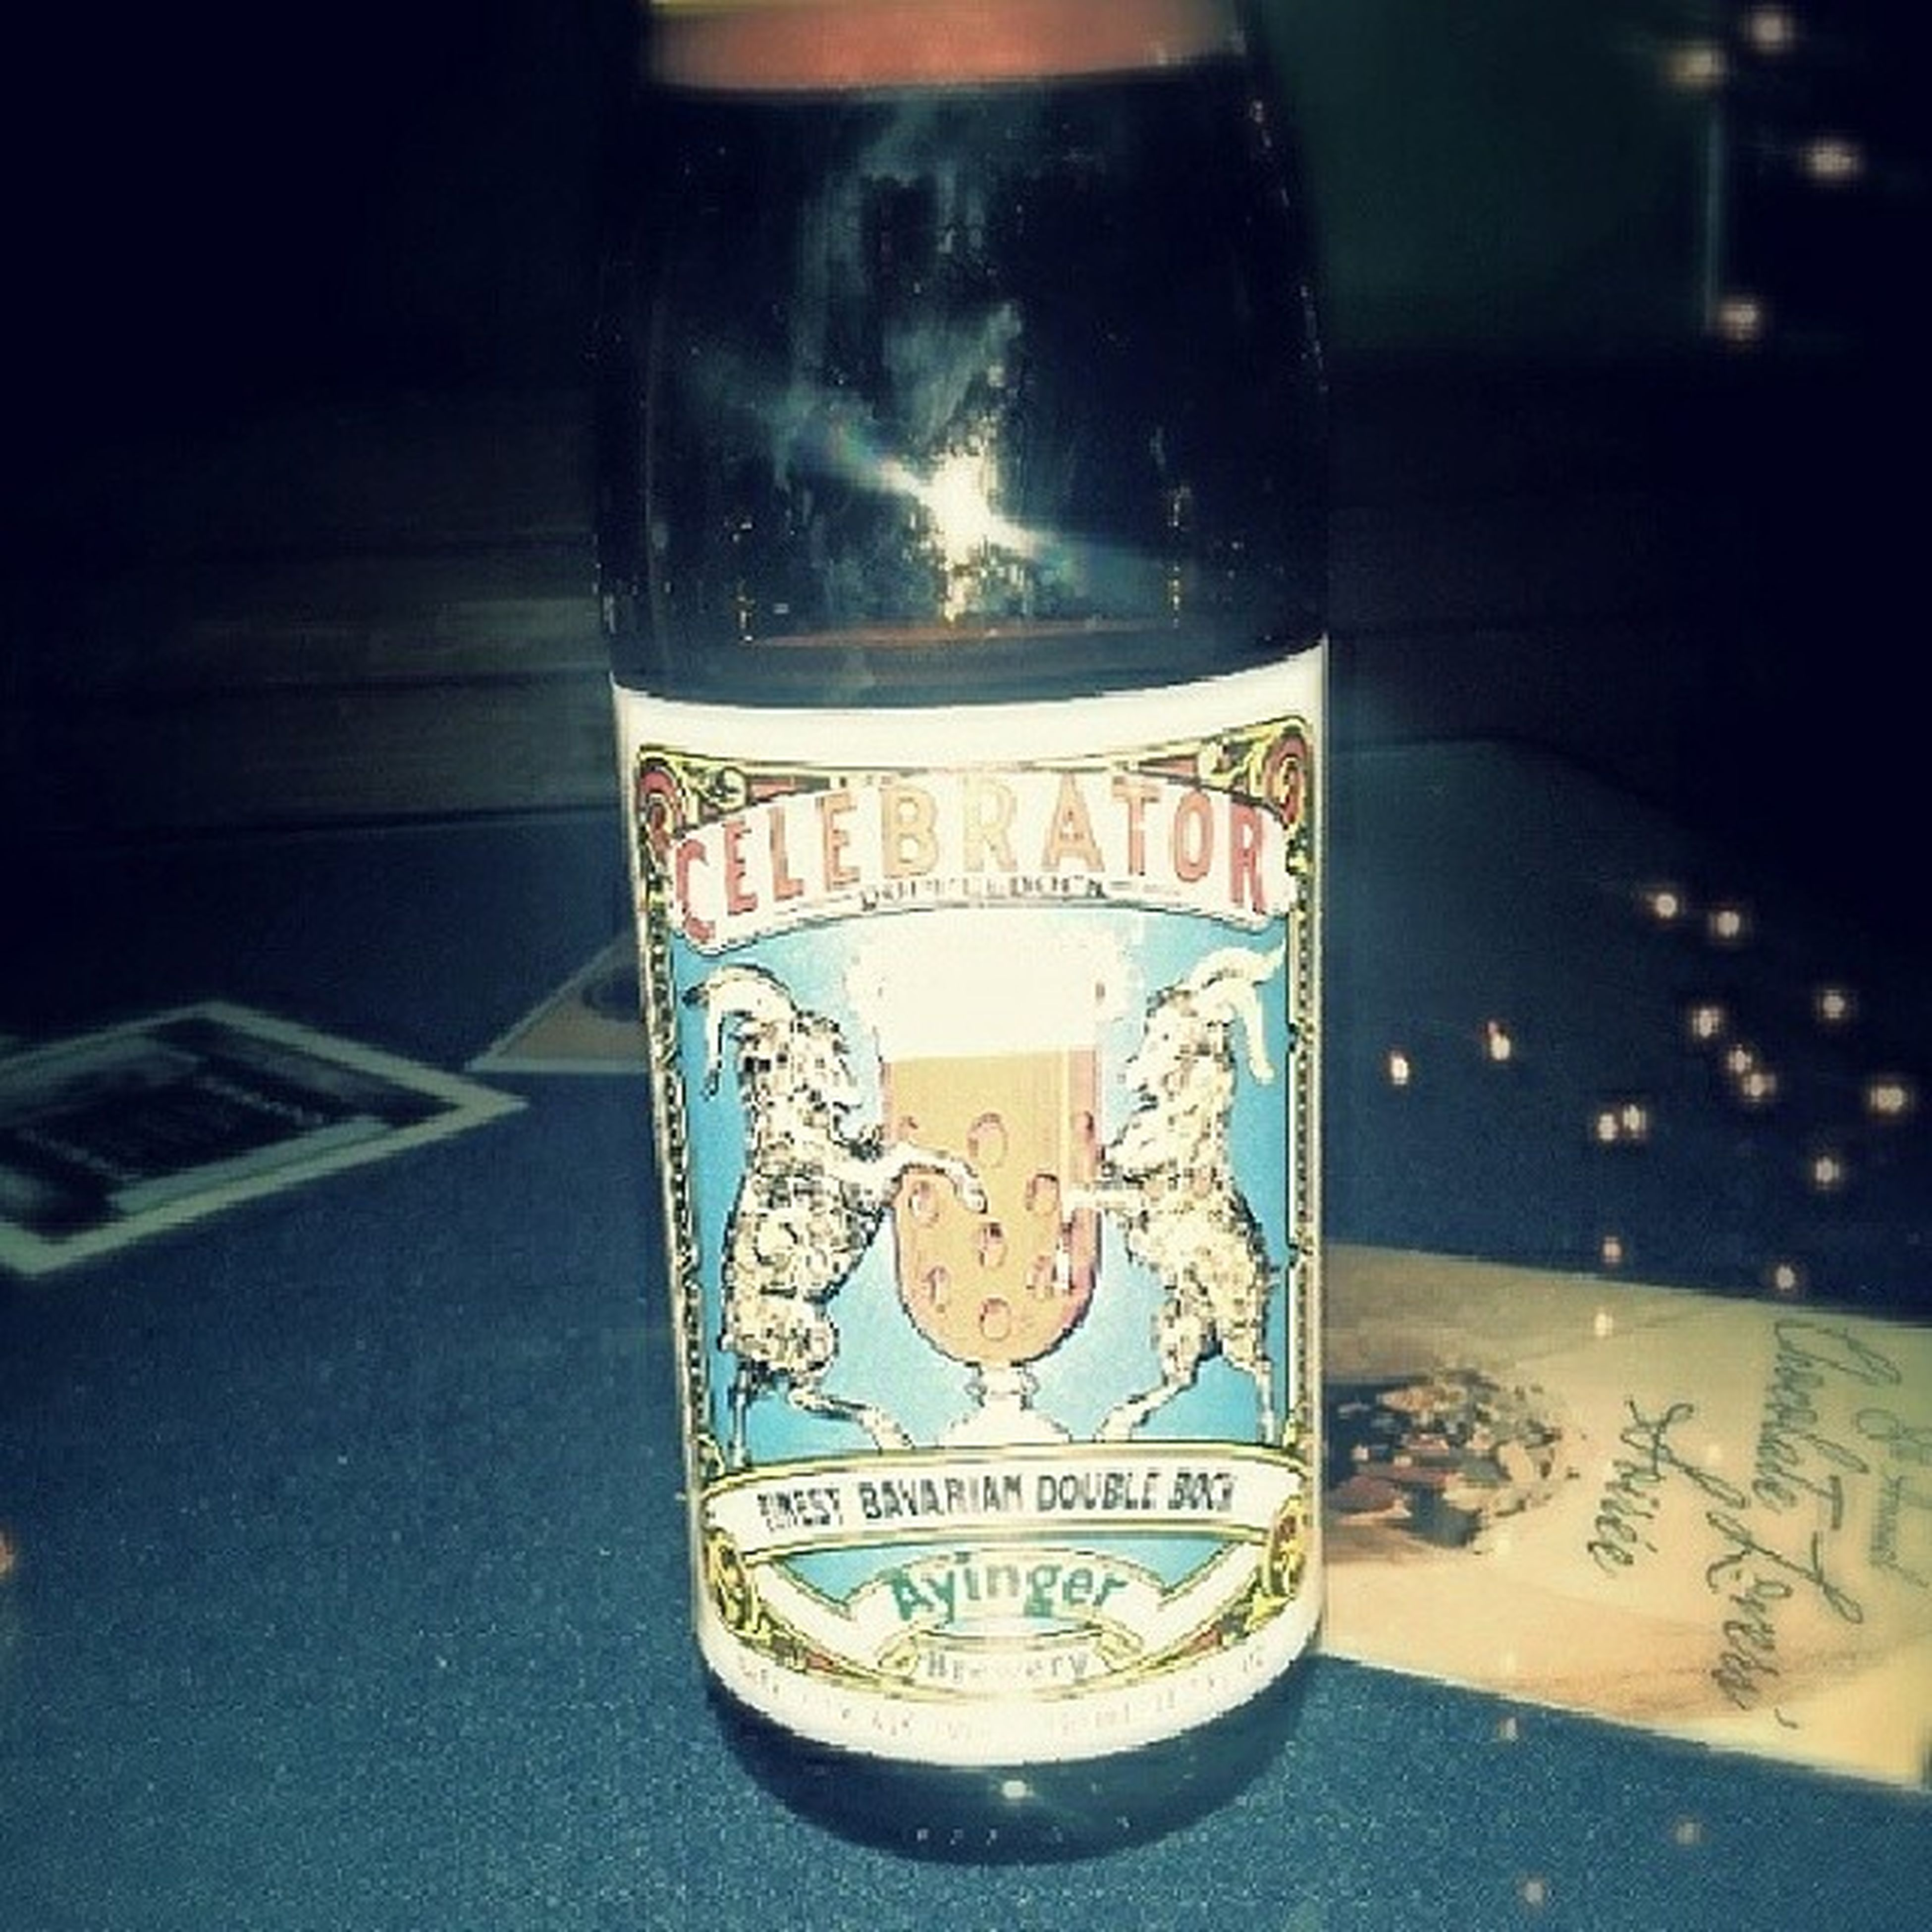 This taste so good! Had a sip of Celebrator and I think I'm in love Fortheloveofbeer Onceithitsyourlips